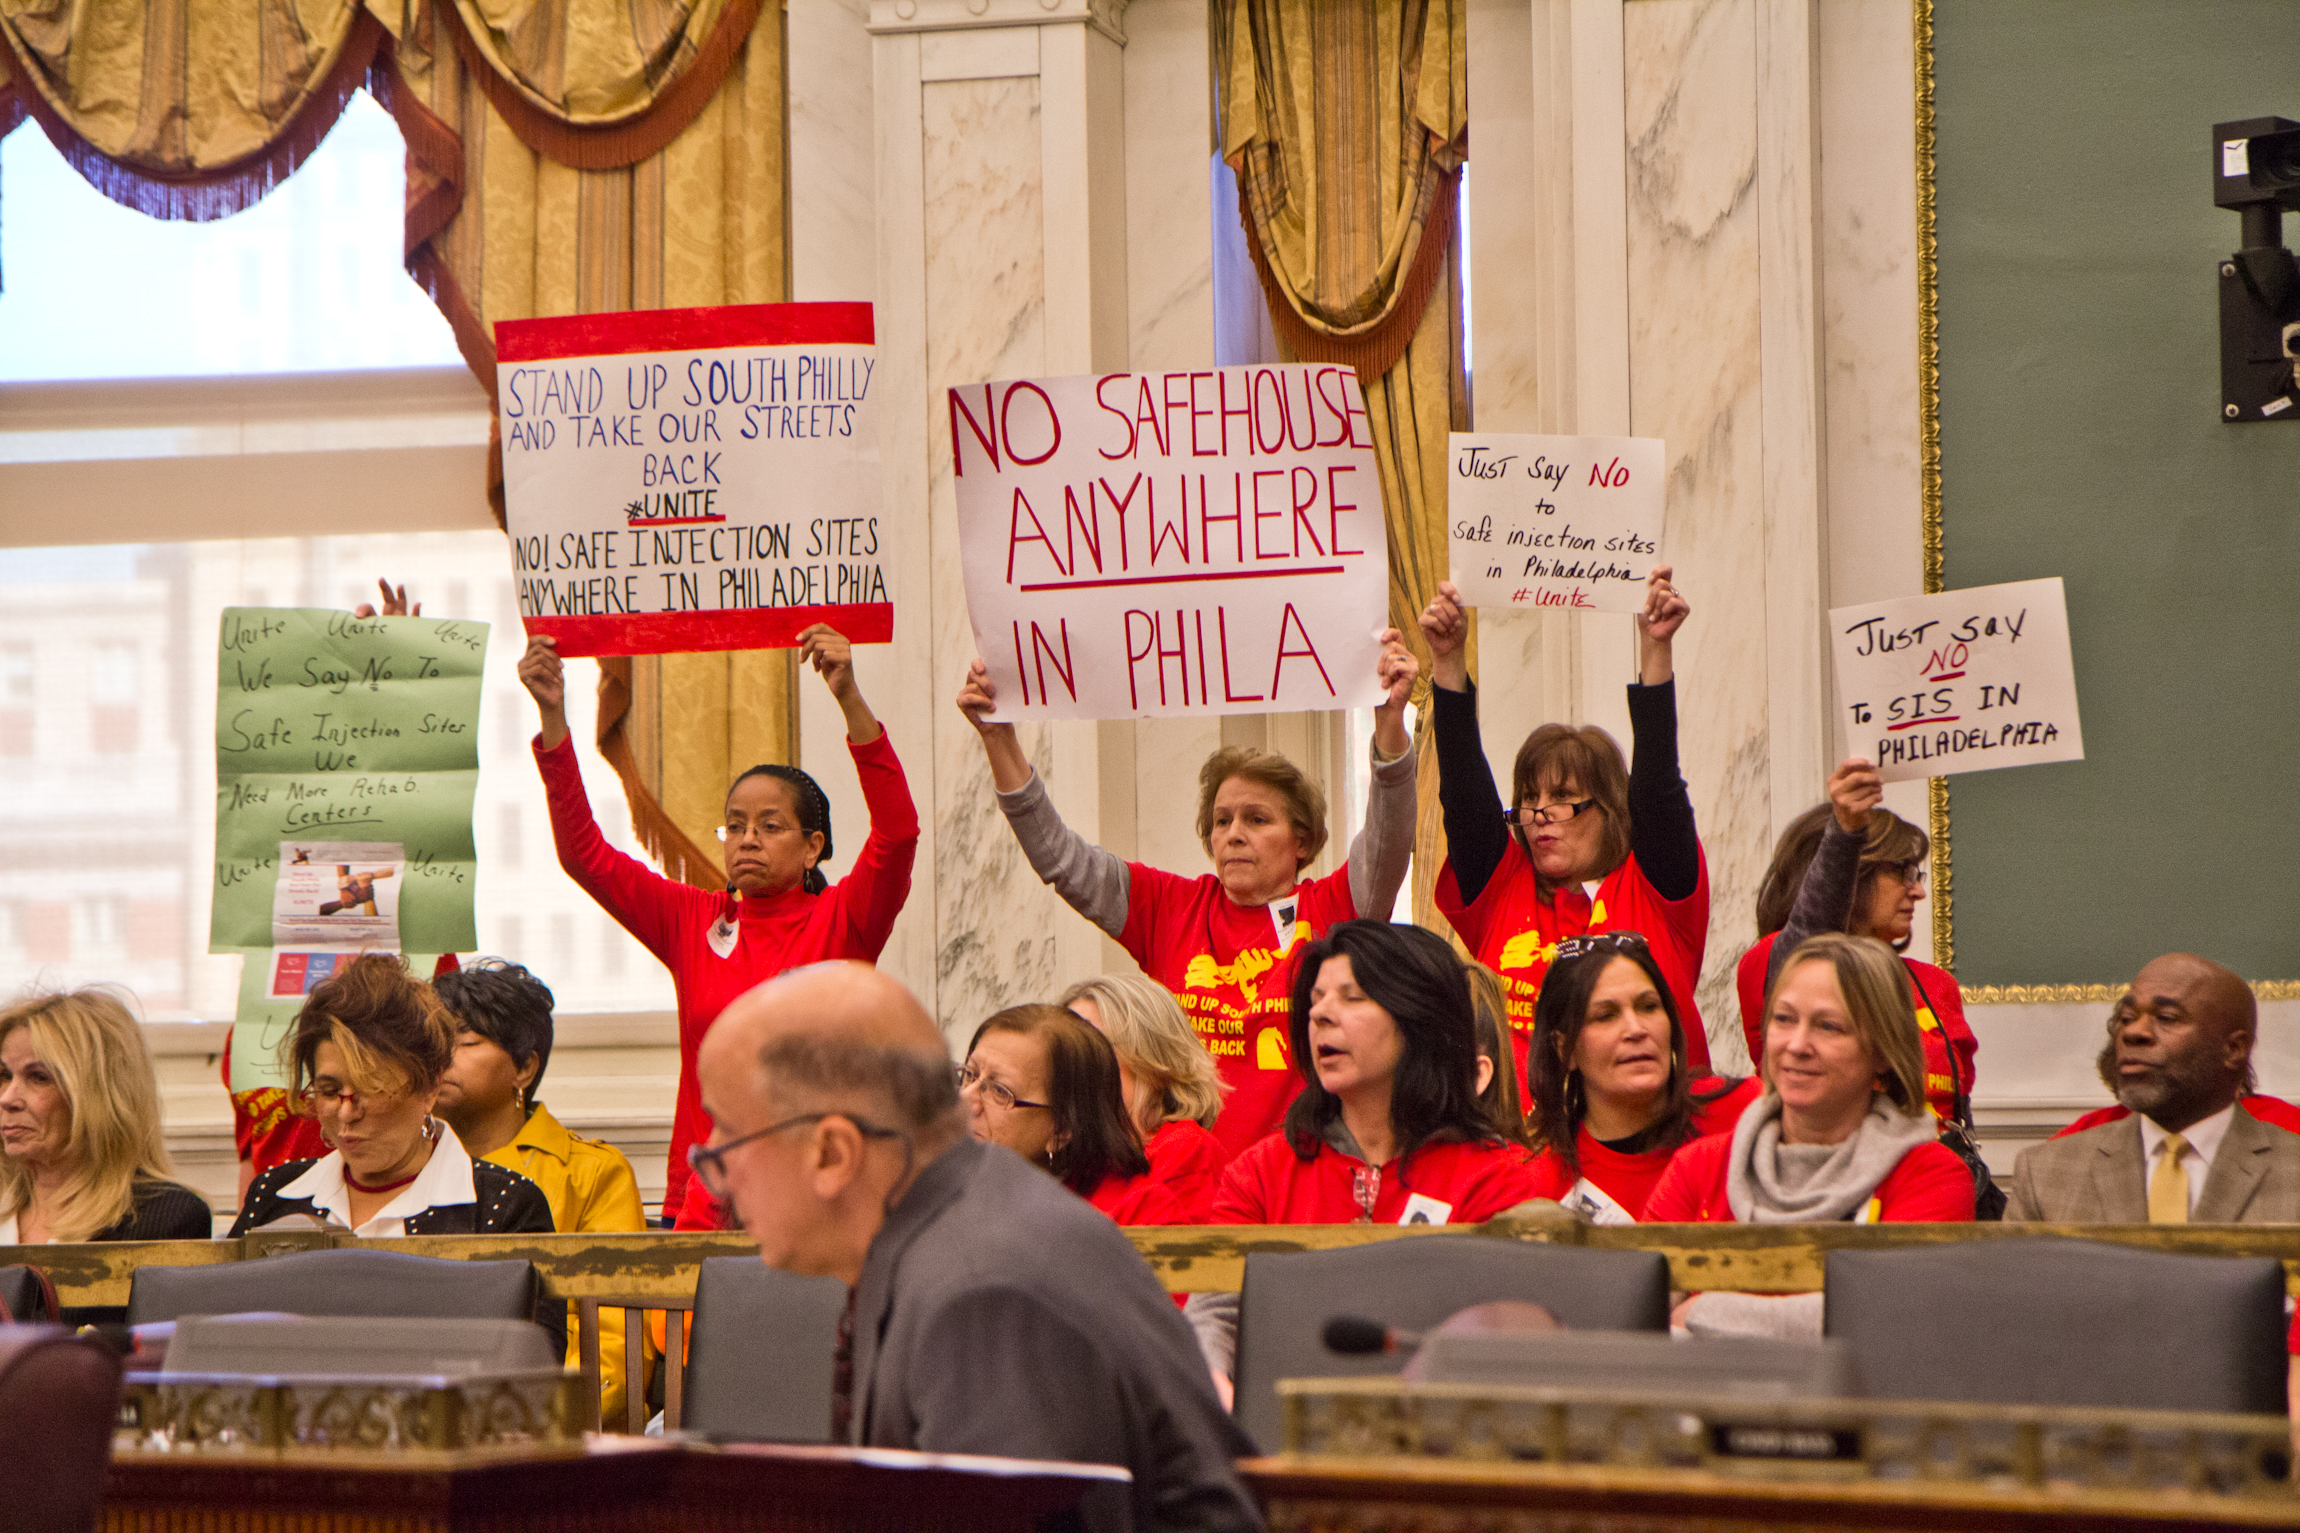 A coalition of South Philadelphia residents cheer opponents of safe injections sites at a hearing in City Council.